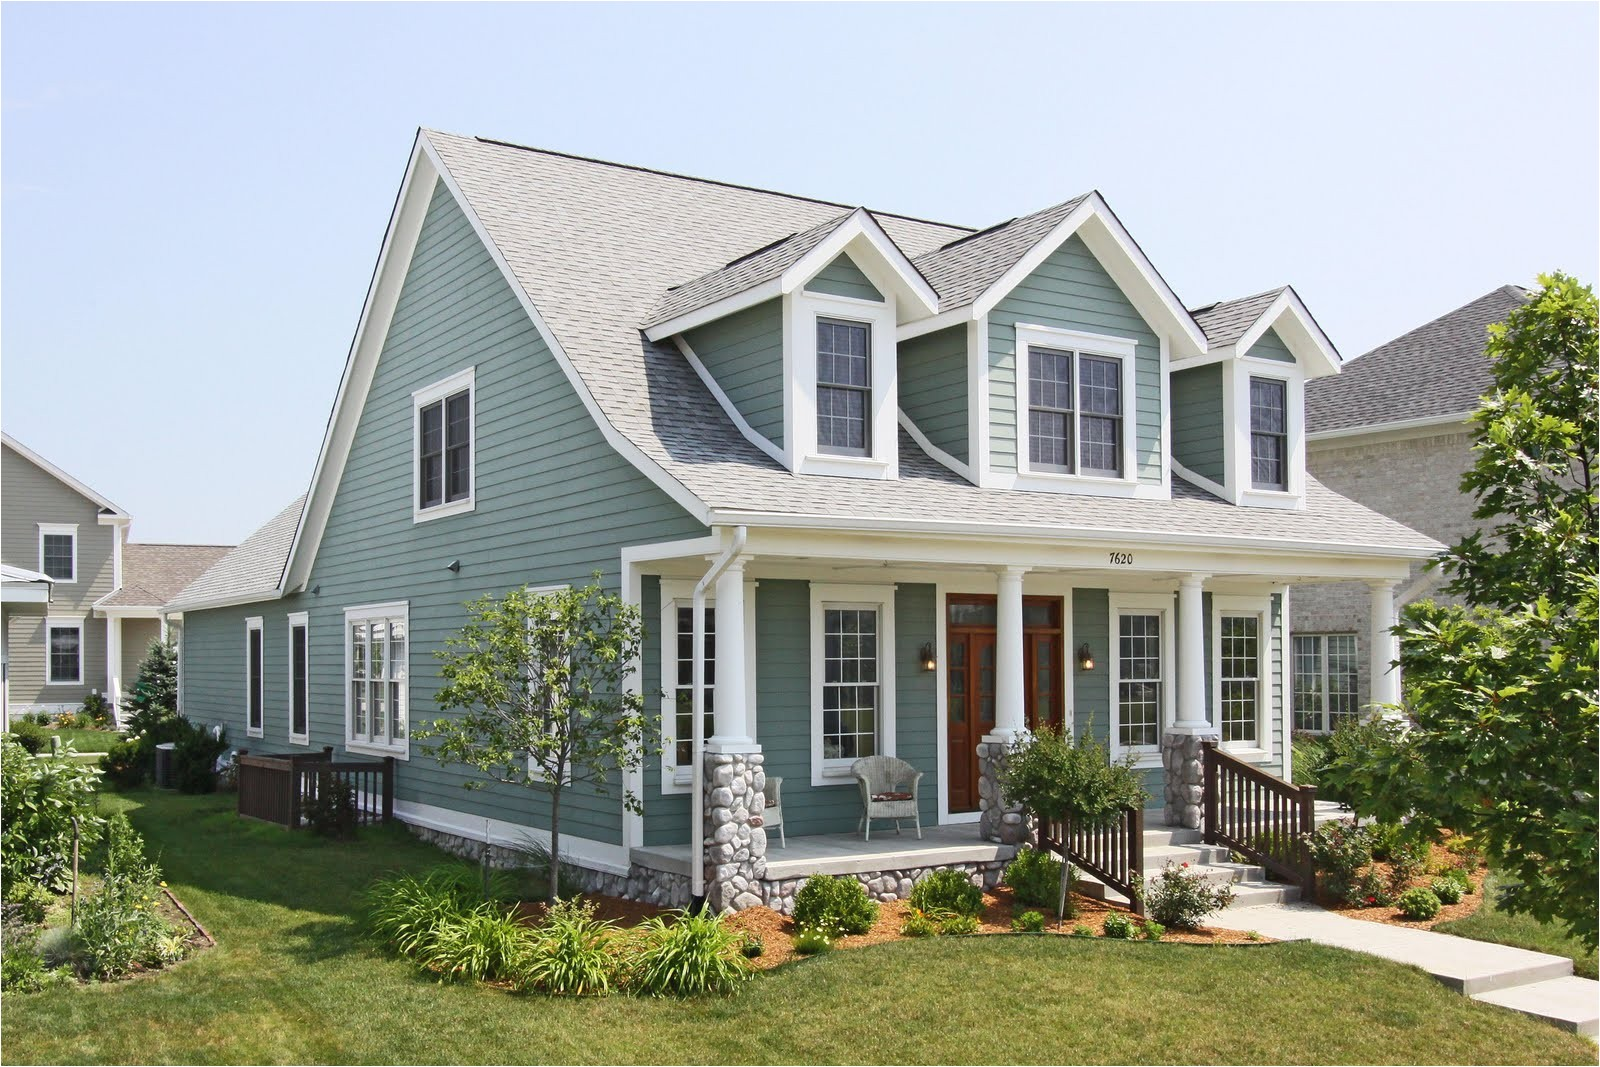 Home Plans with Porches top Modern House Floor Plans Cottage House Plans